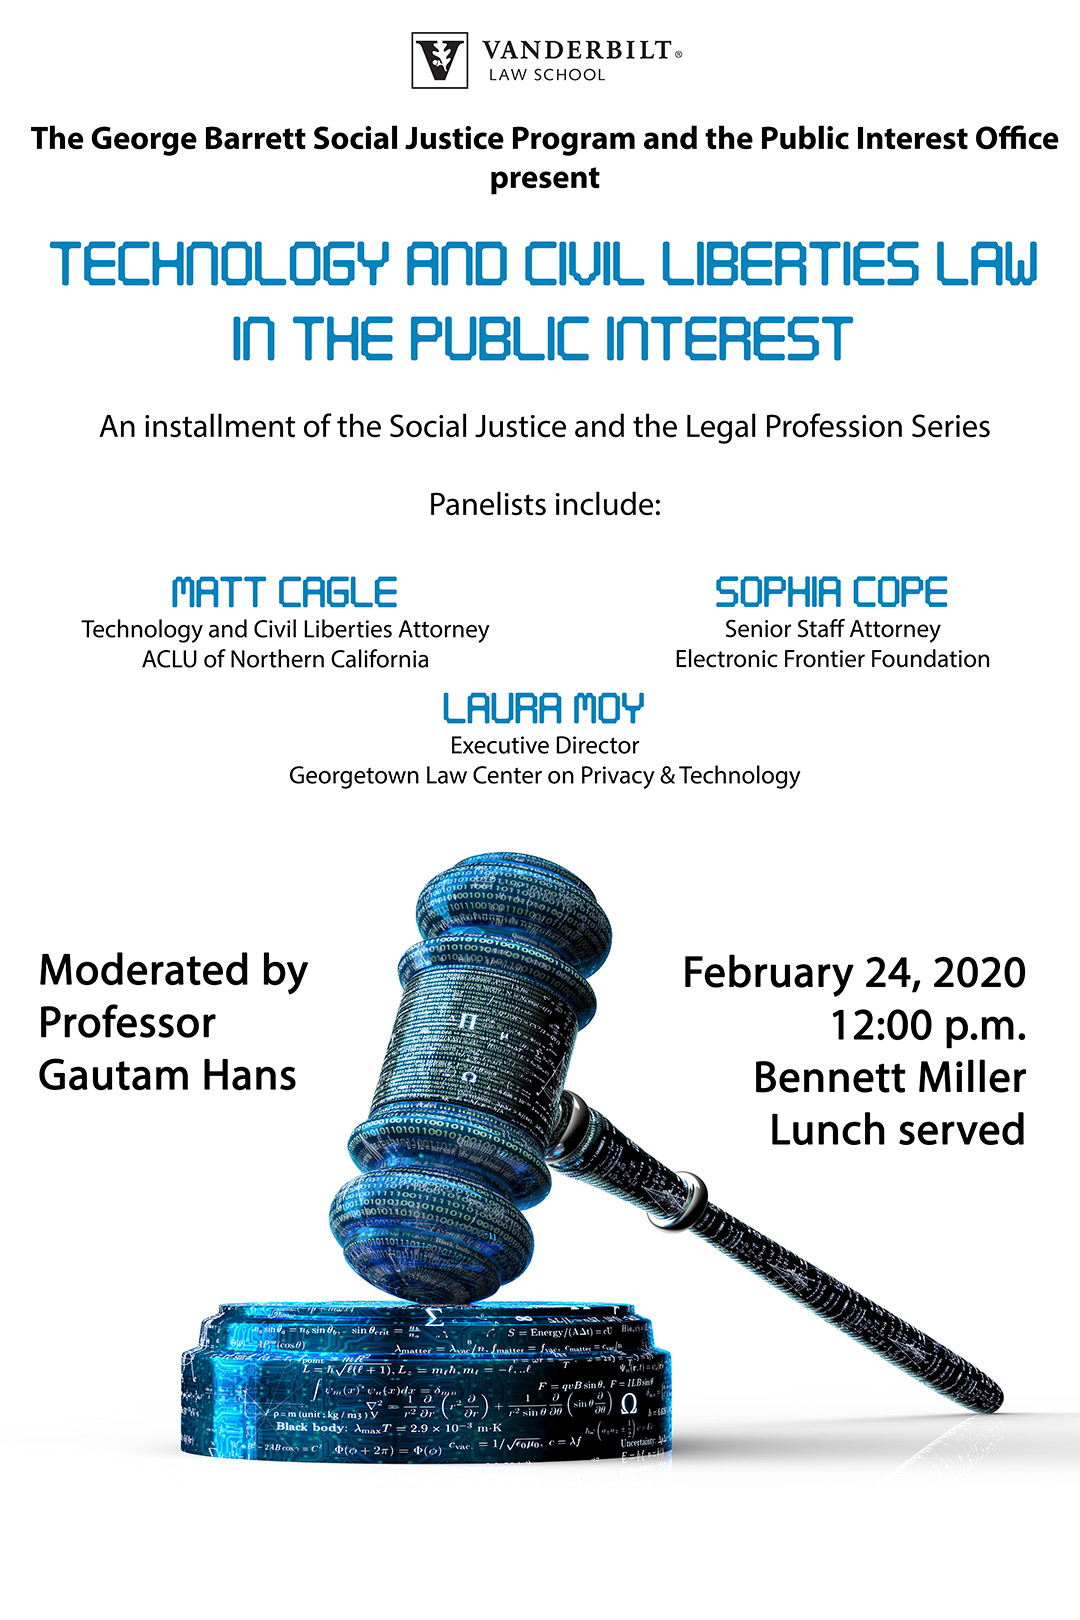 Image of event poster for social justice and the legal profession